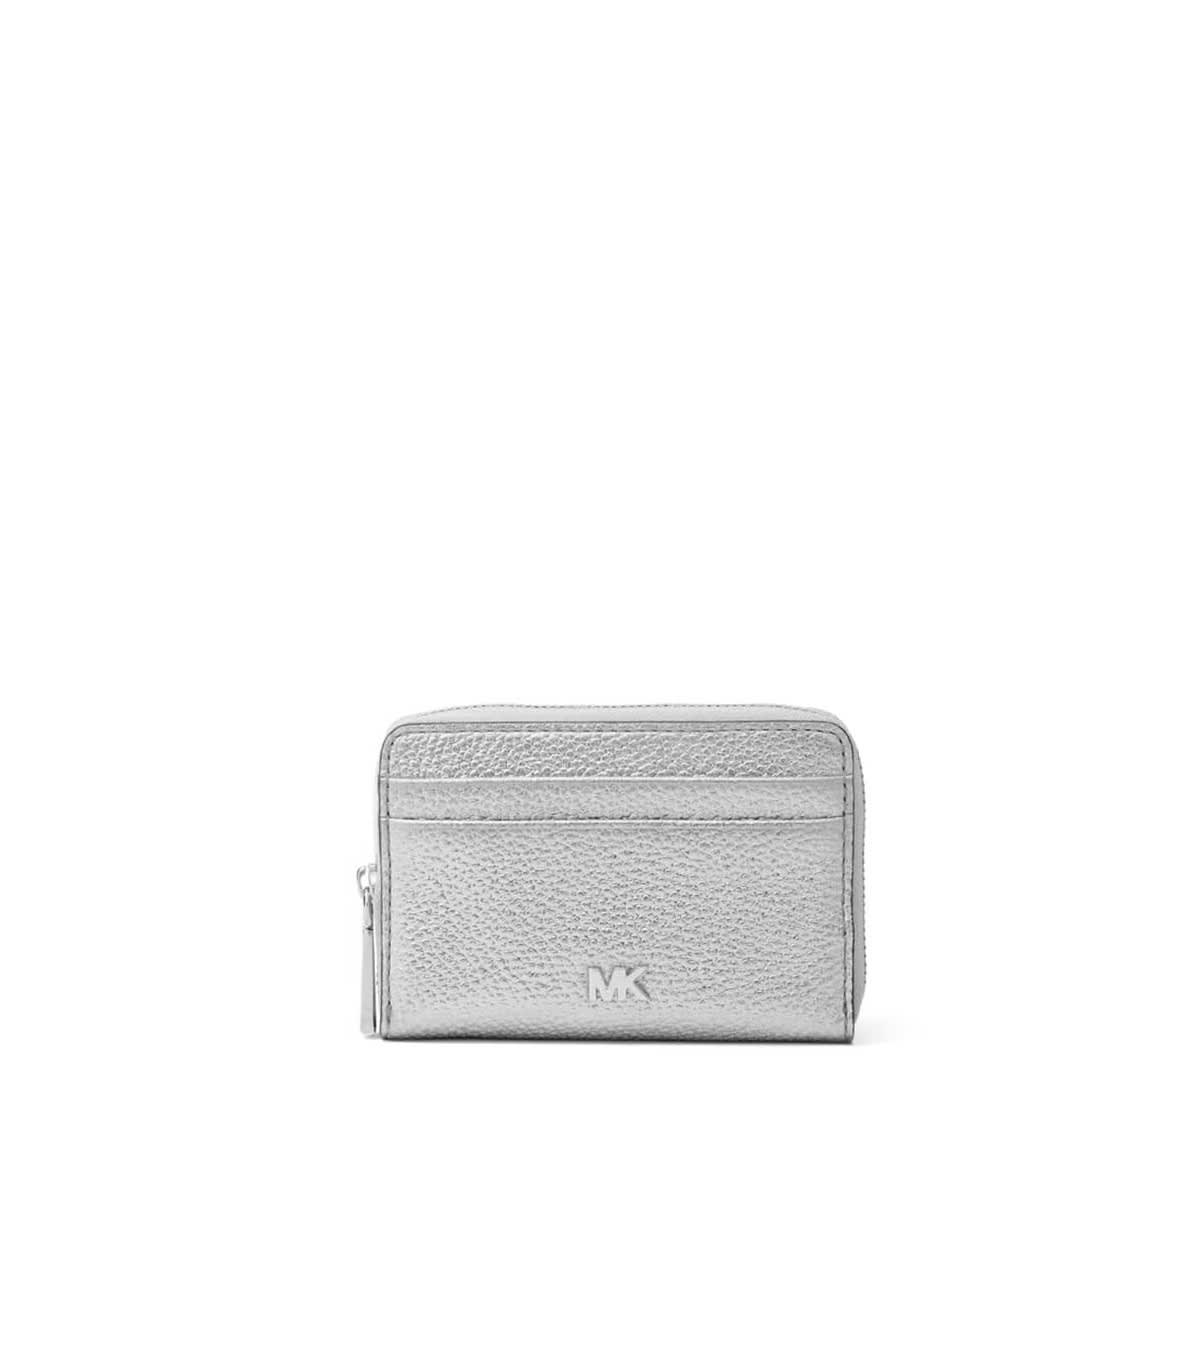 Michael Kors Wallets MOTT SILVER CARD HOLDER